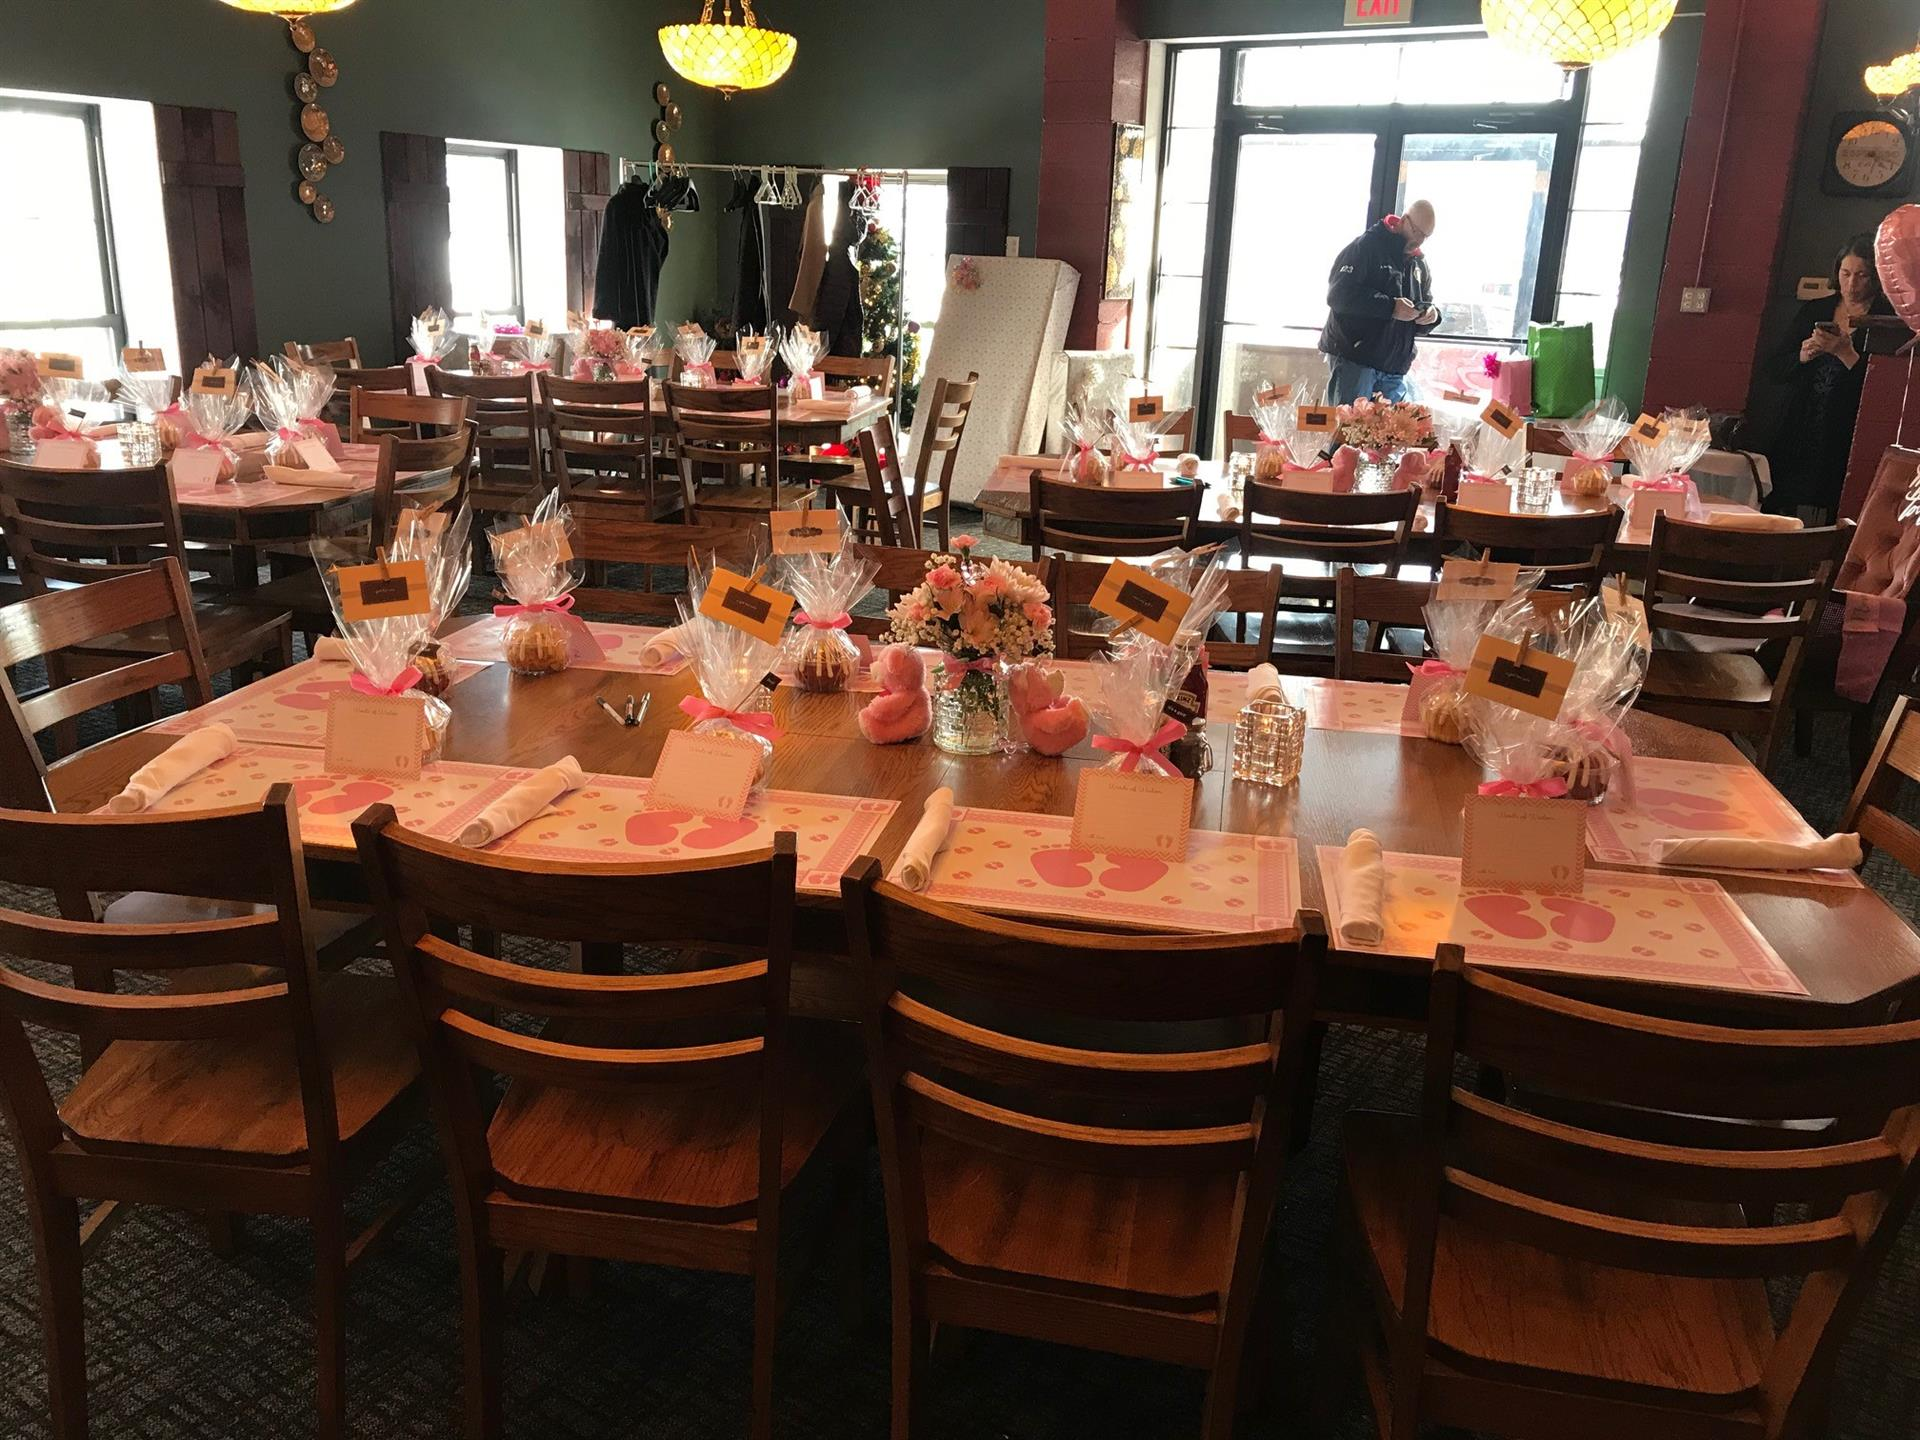 private dining tables with flower center pieces and goodie bags for each guest